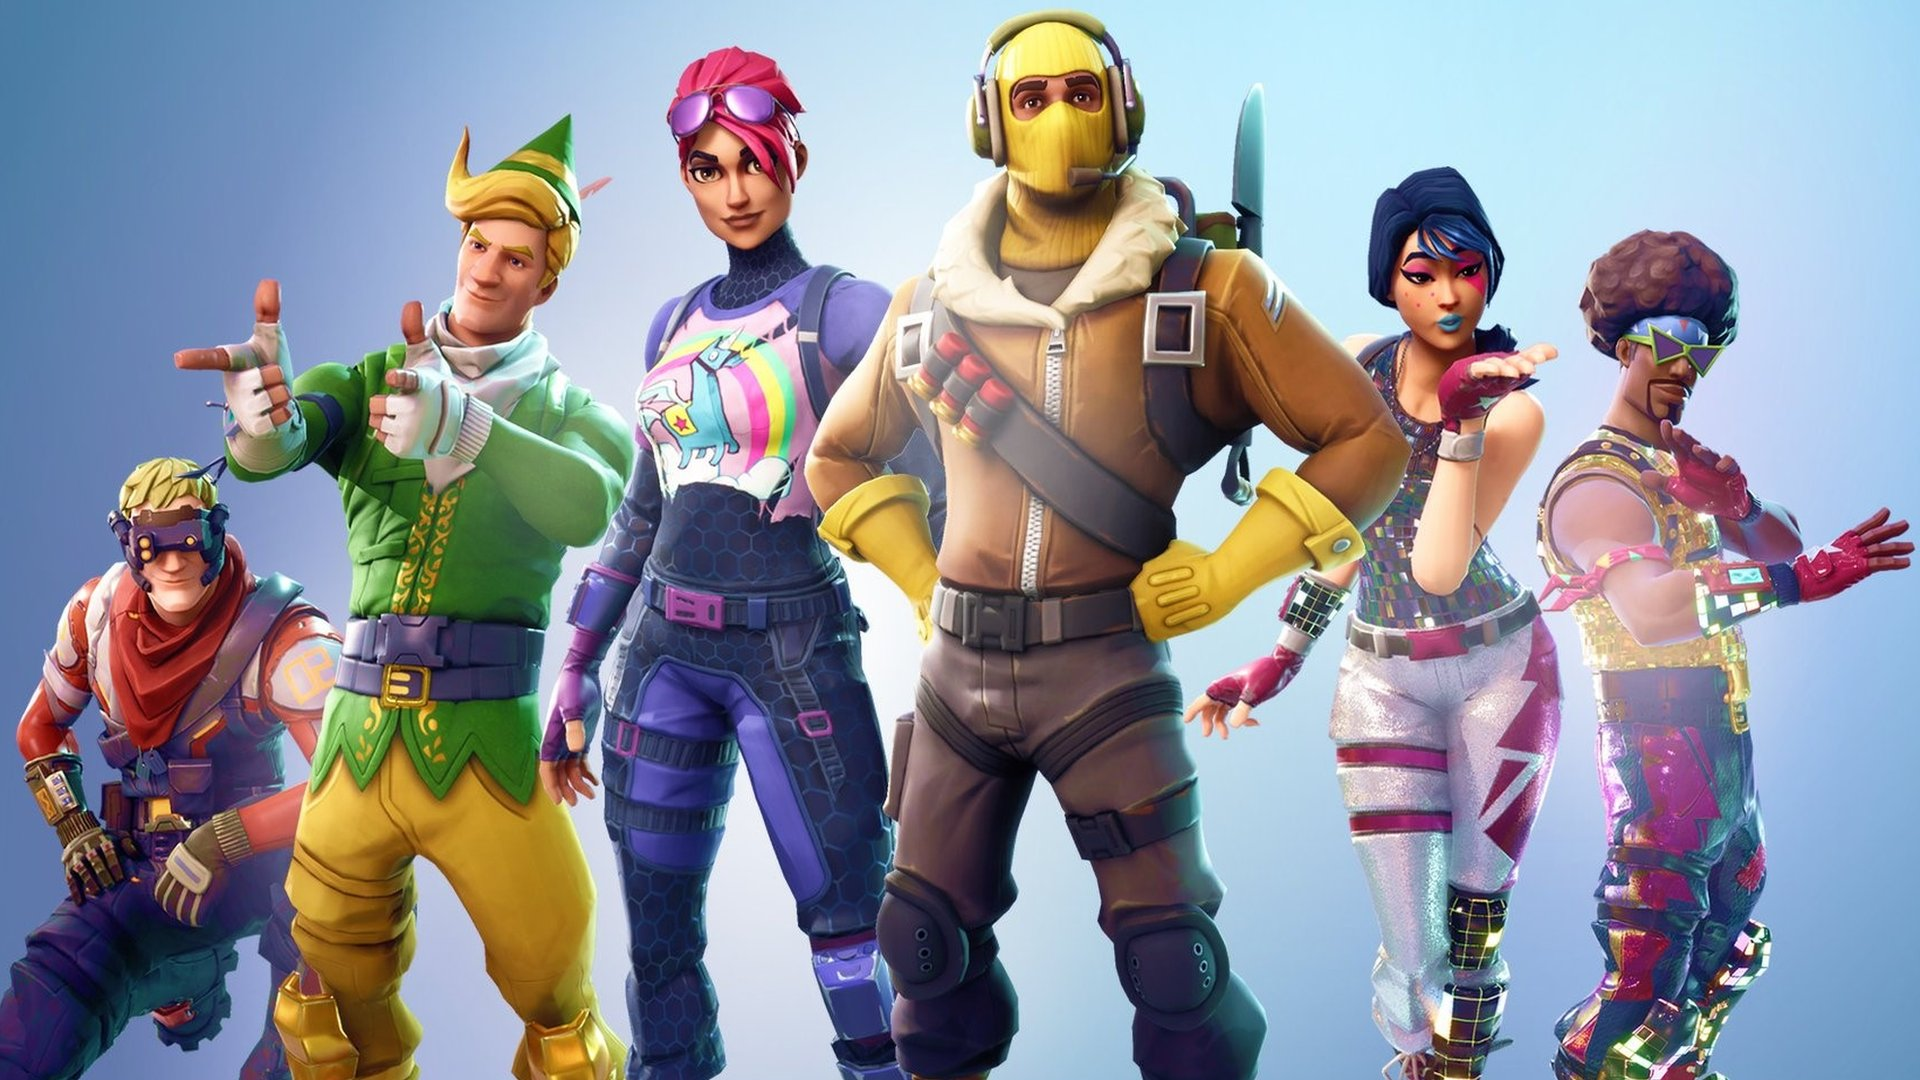 $100m prize fund offered for Fortnite game play